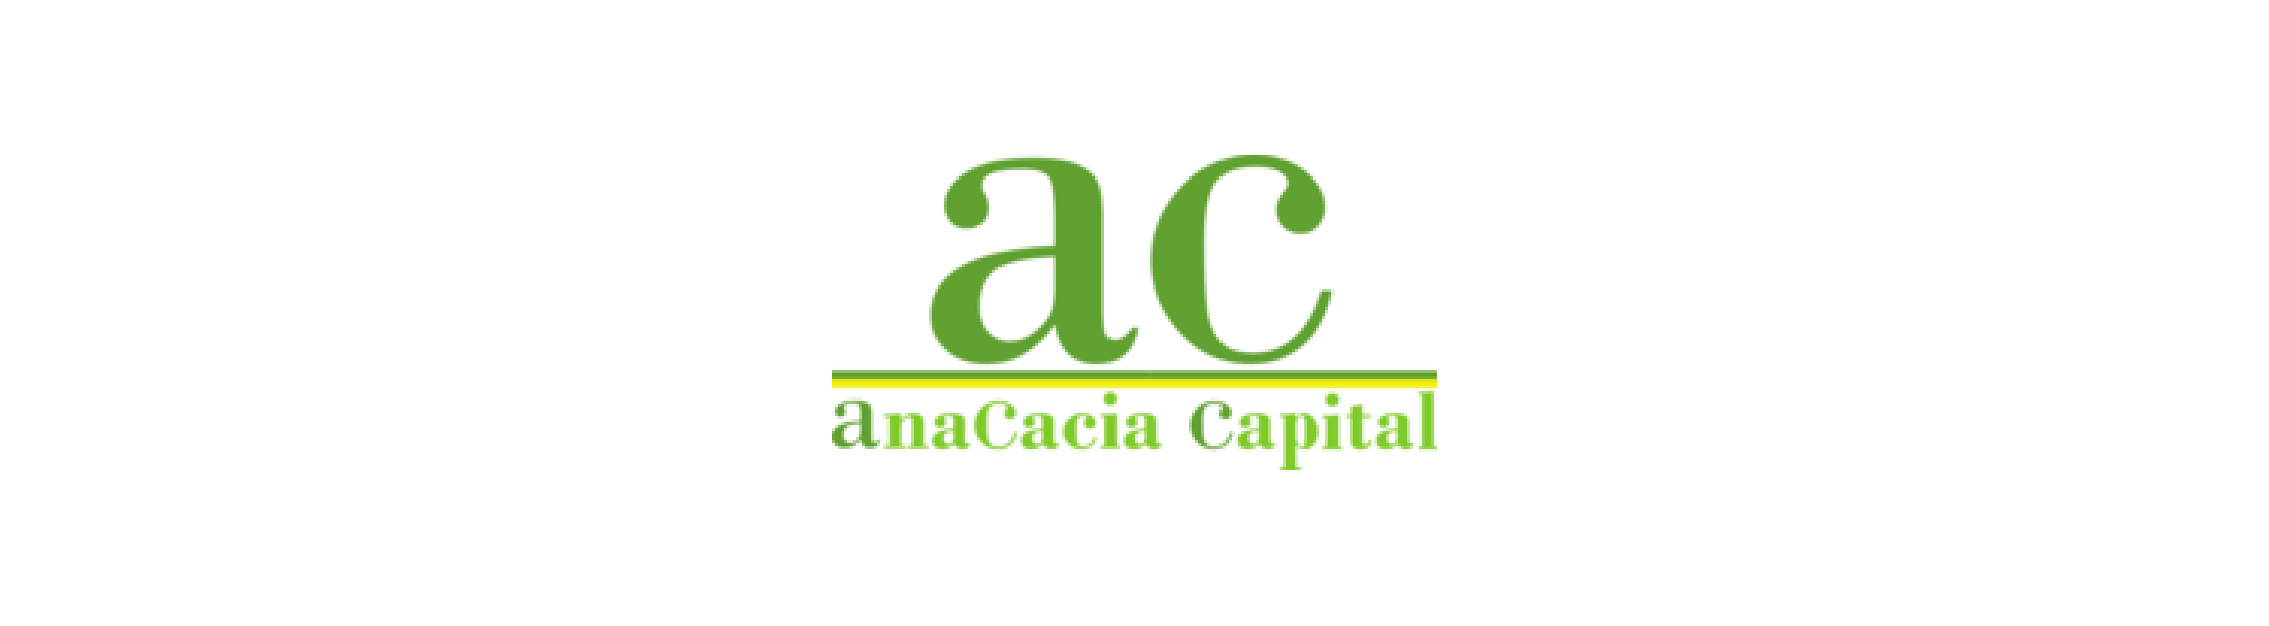 Anacacia Capital - Anacacia Capital provide strategic insight, resources and private capital to help outstanding management grow leading SMEs. Their funds include some of Australia's best ever performing equity funds. They can support leading SMEs through their cycle from private to public listing if that's the aspiration.Alpin and Anacacia Capital have been partners since the sale of shares in the business, Duncan Solutions.